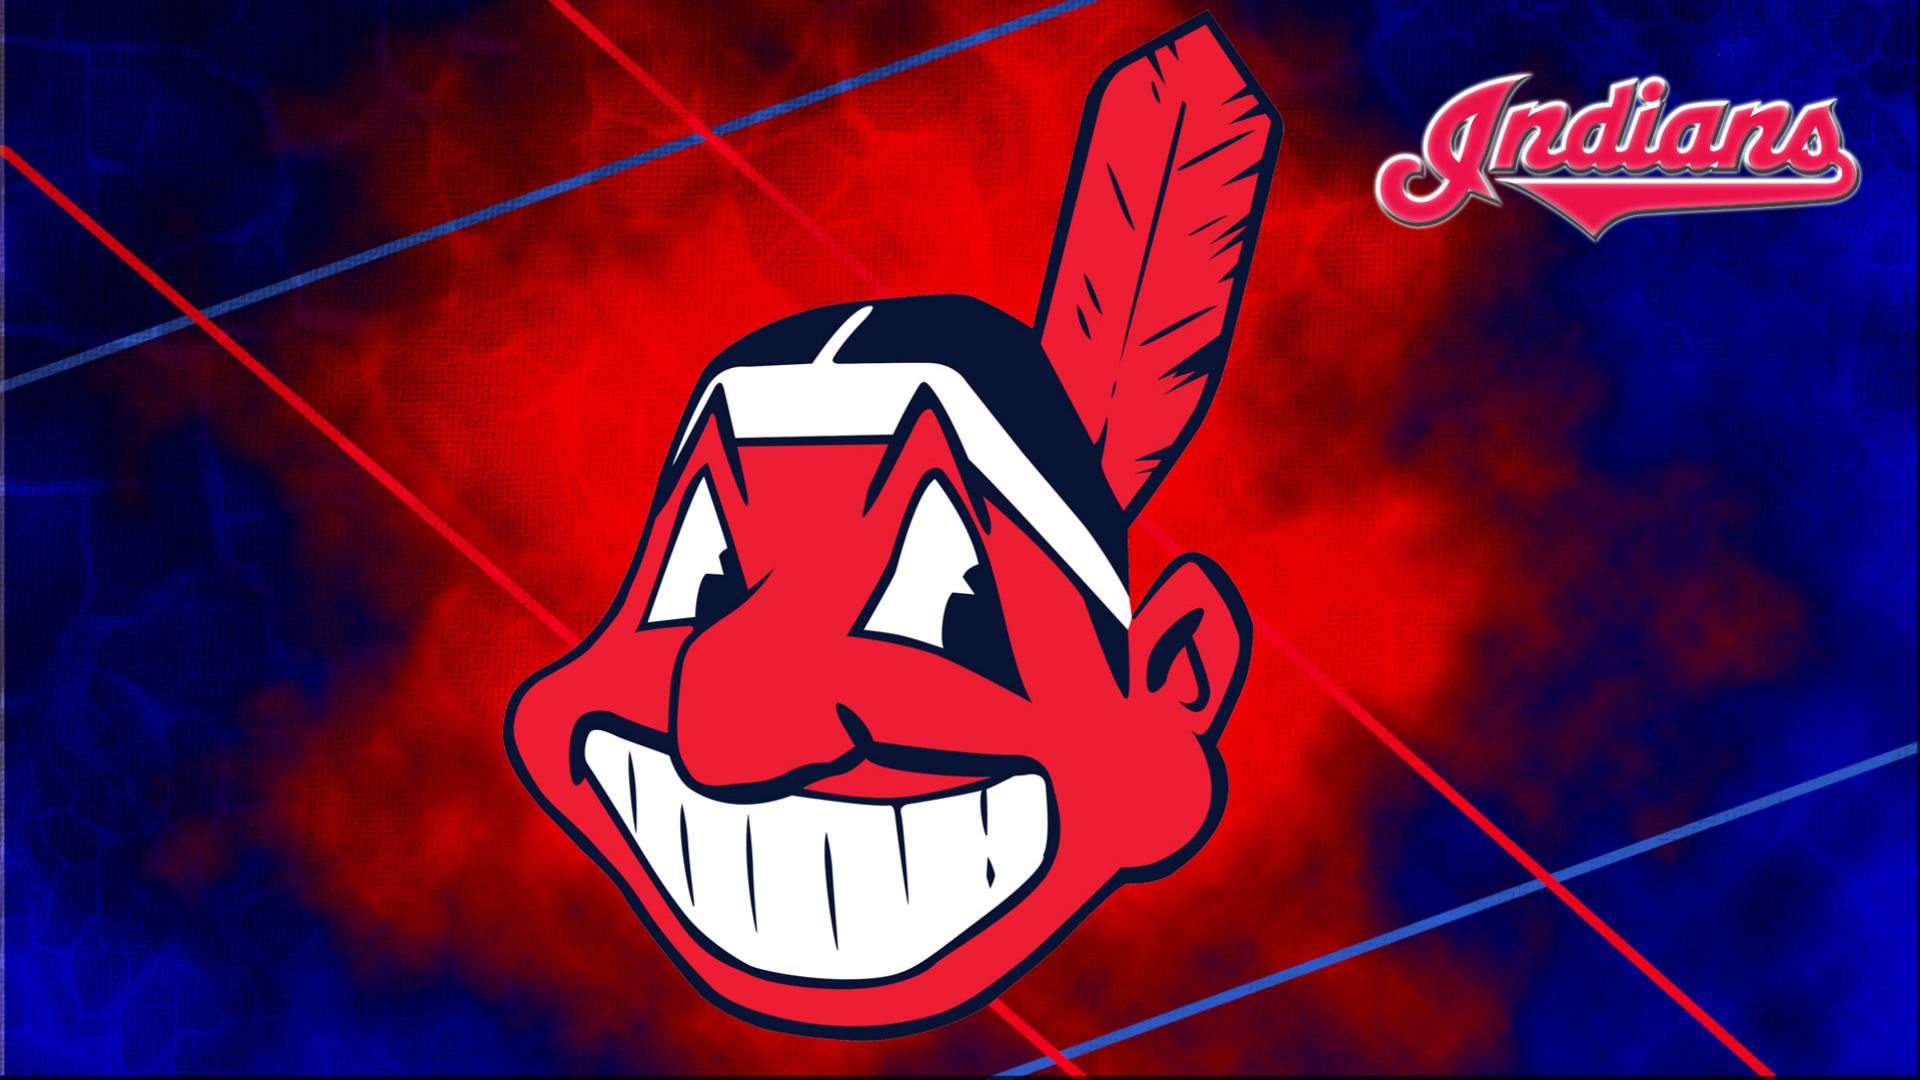 CLEVELAND INDIANS mlb baseball (7) wallpaper background